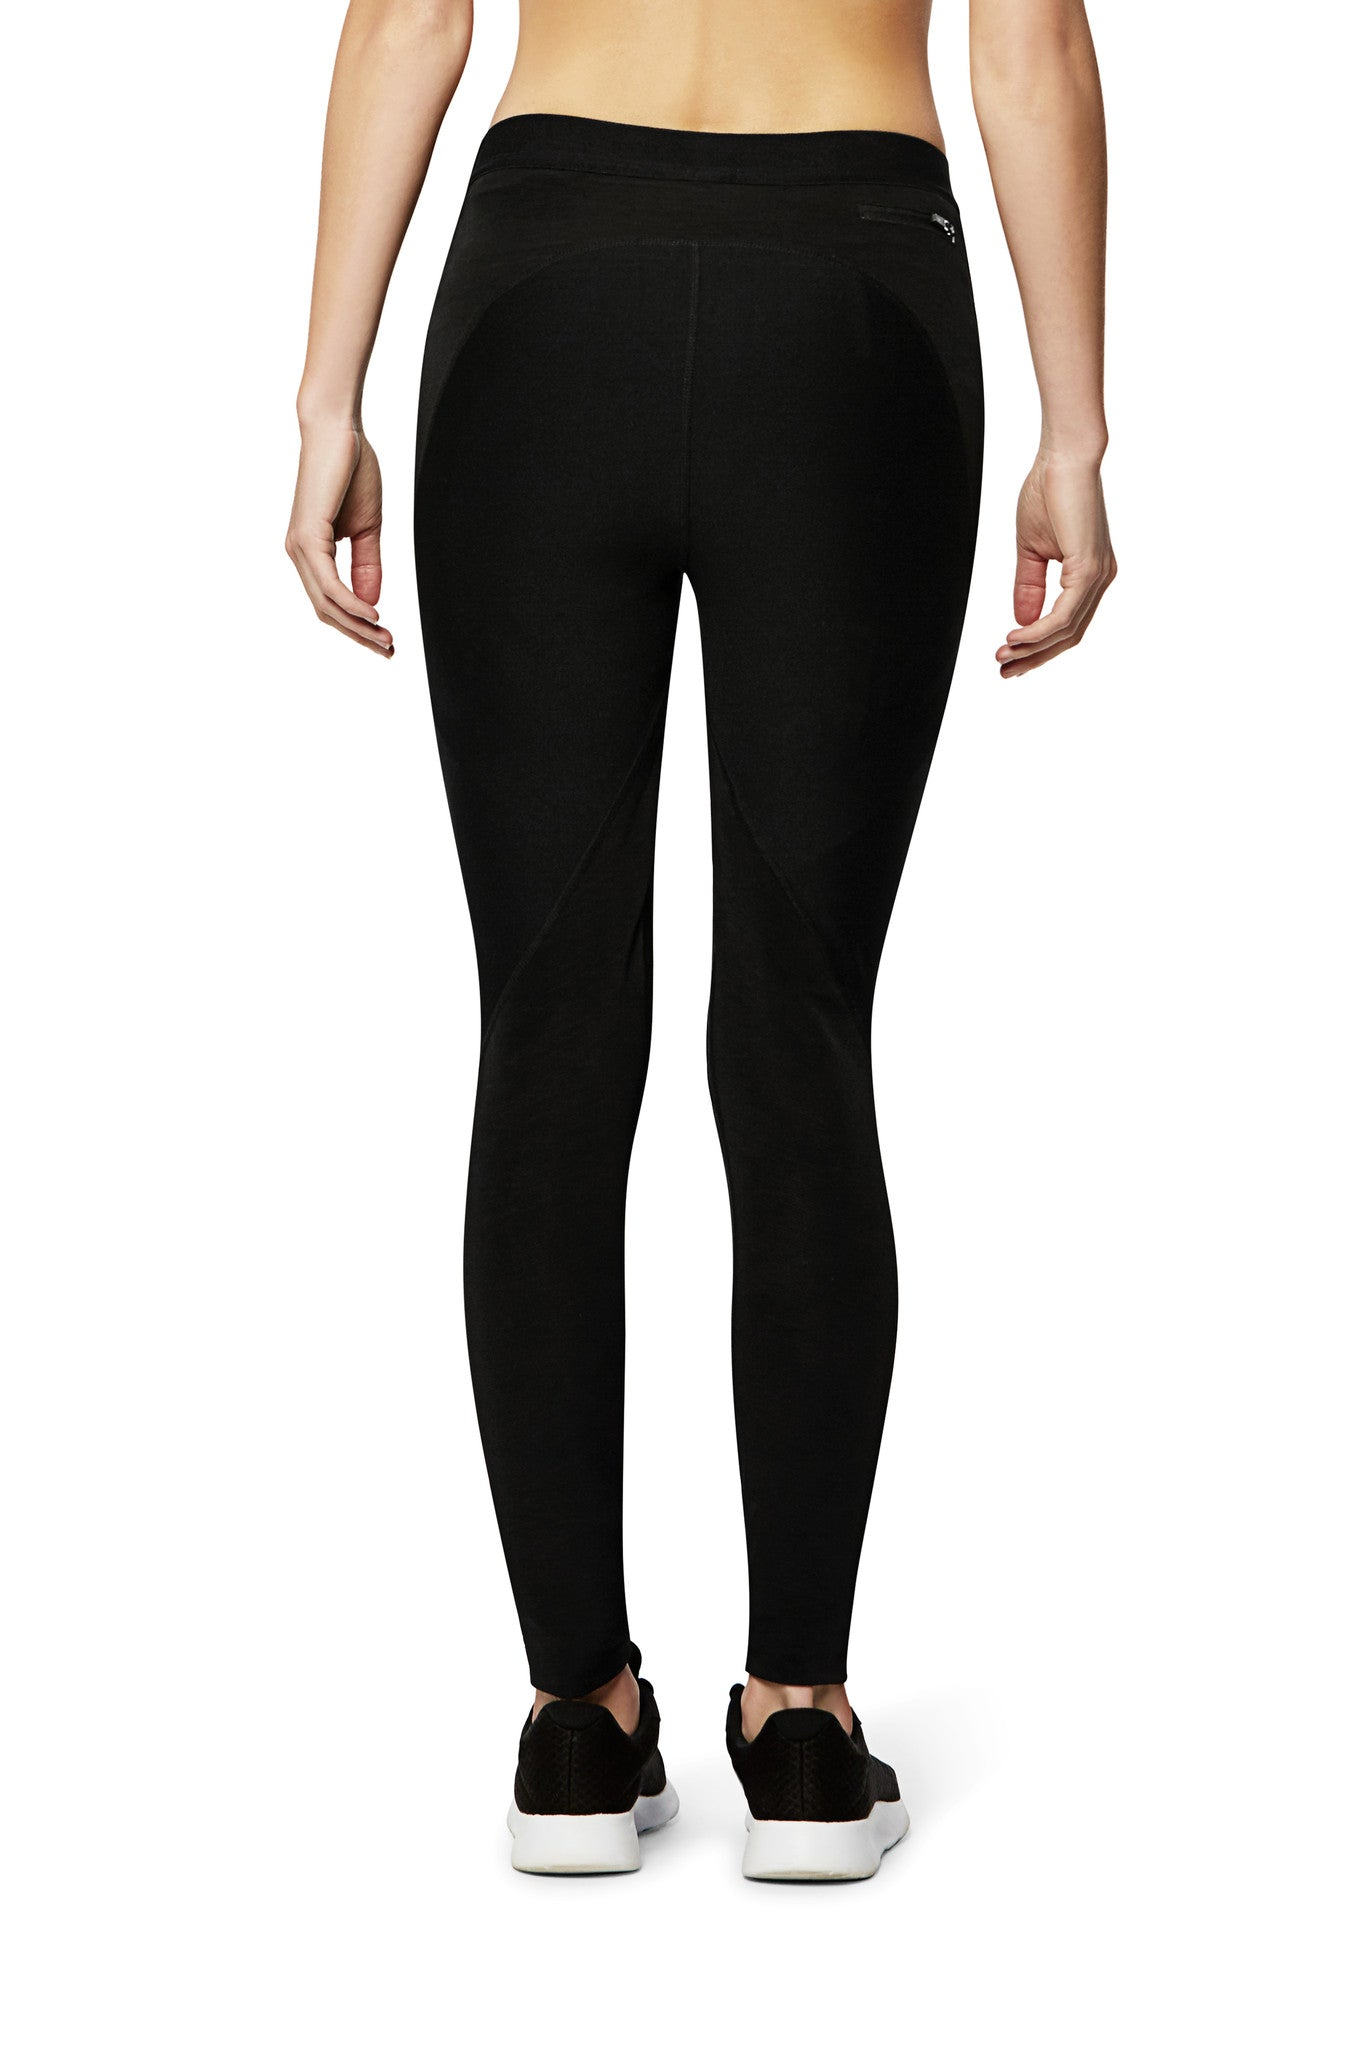 Pro Resistance Tights for Women - Black